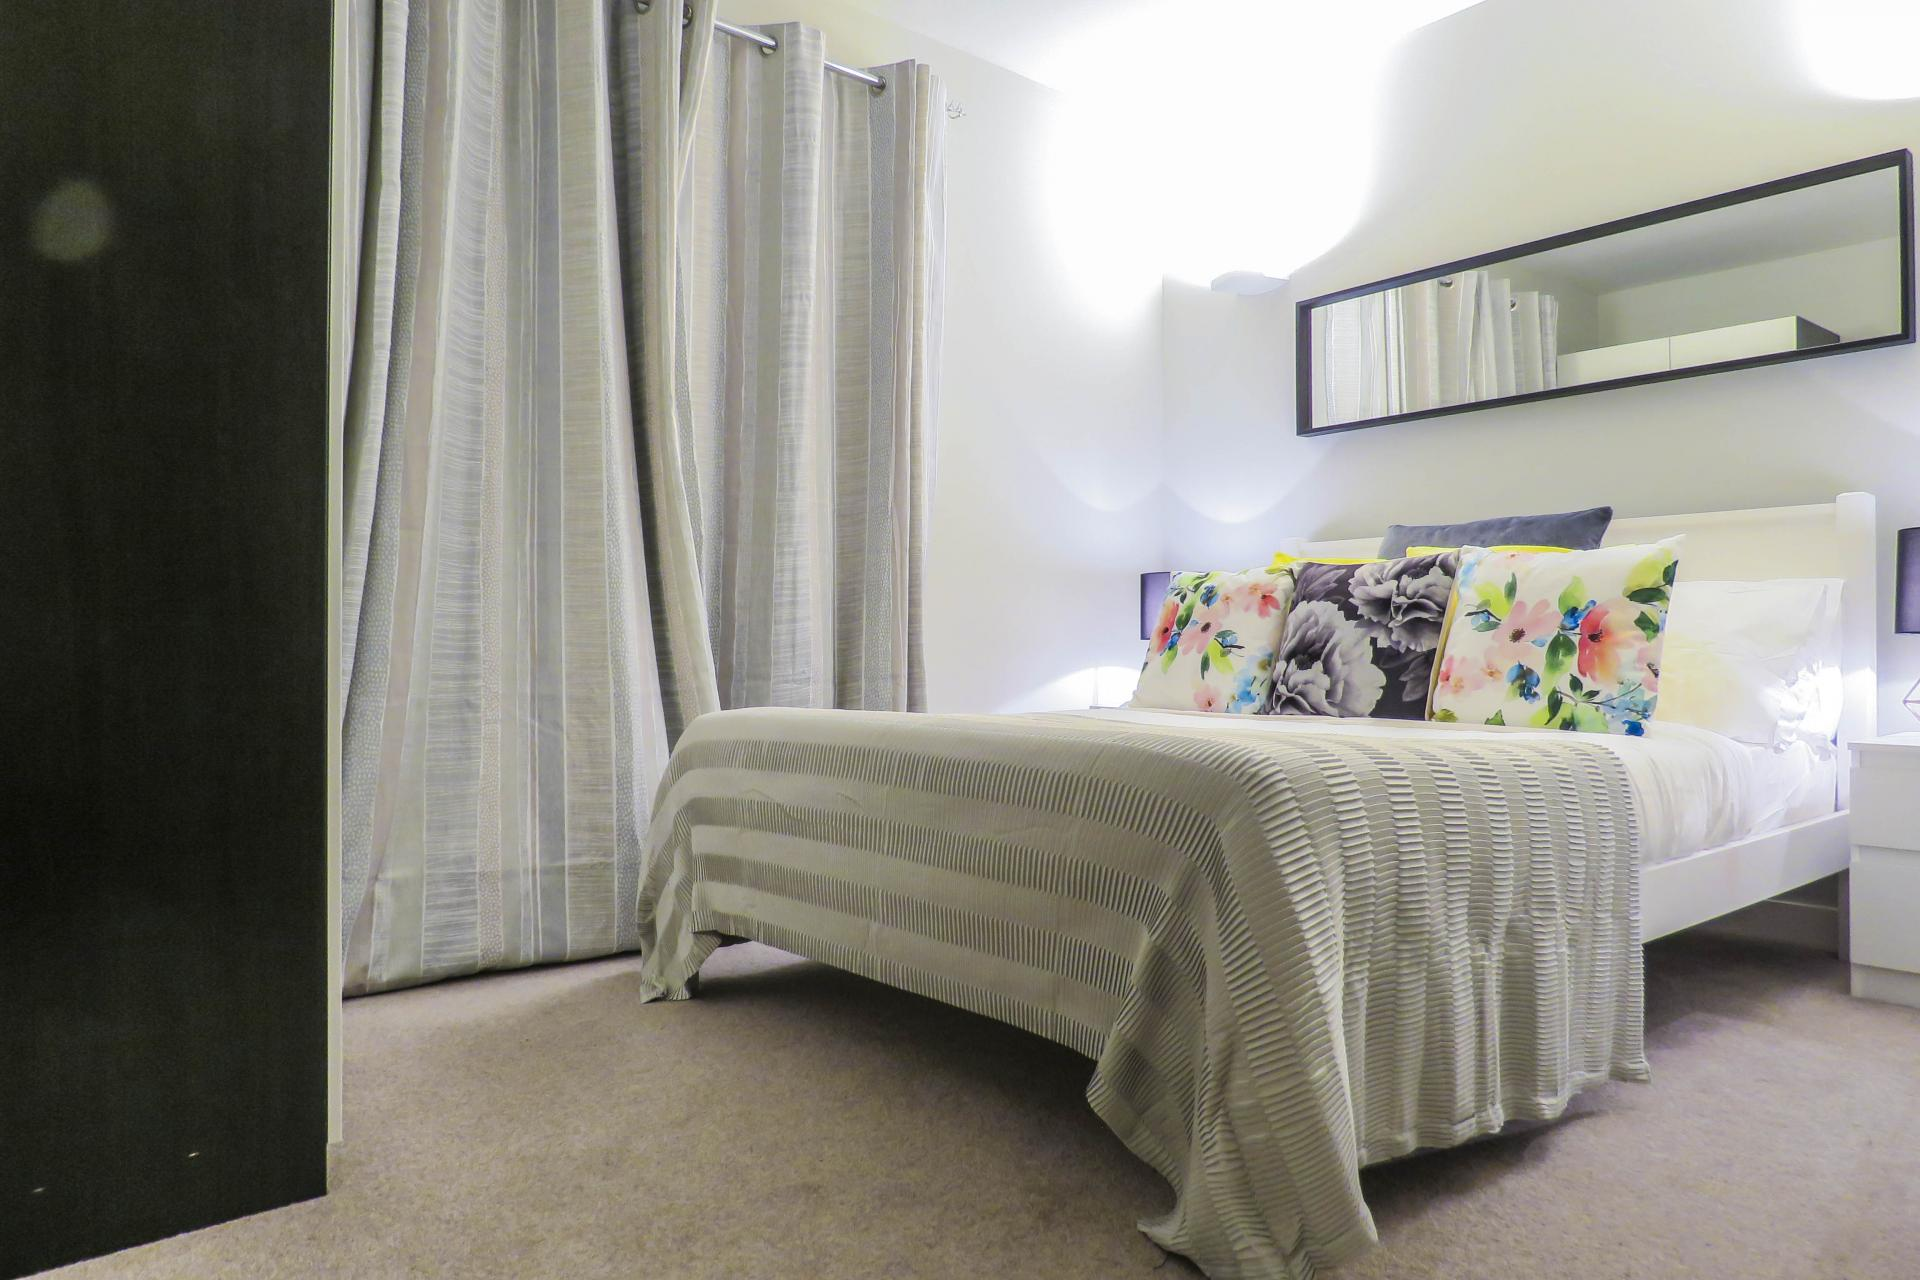 Bed spread at Jewellery Quarter Serviced Apartments